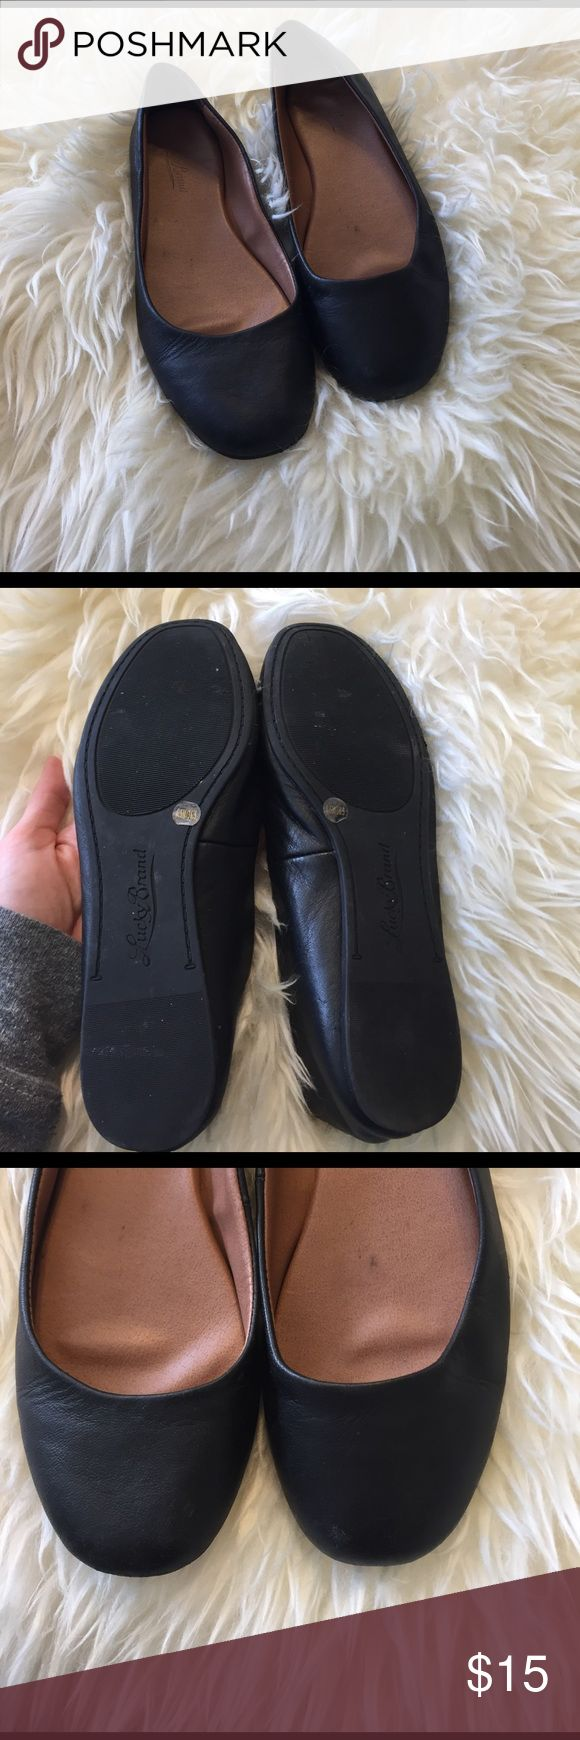 Lucky brand black leather flats size 6.5 Comfy! Black leather round toe lucky brand size 6.5 Lucky Brand Shoes Flats & Loafers